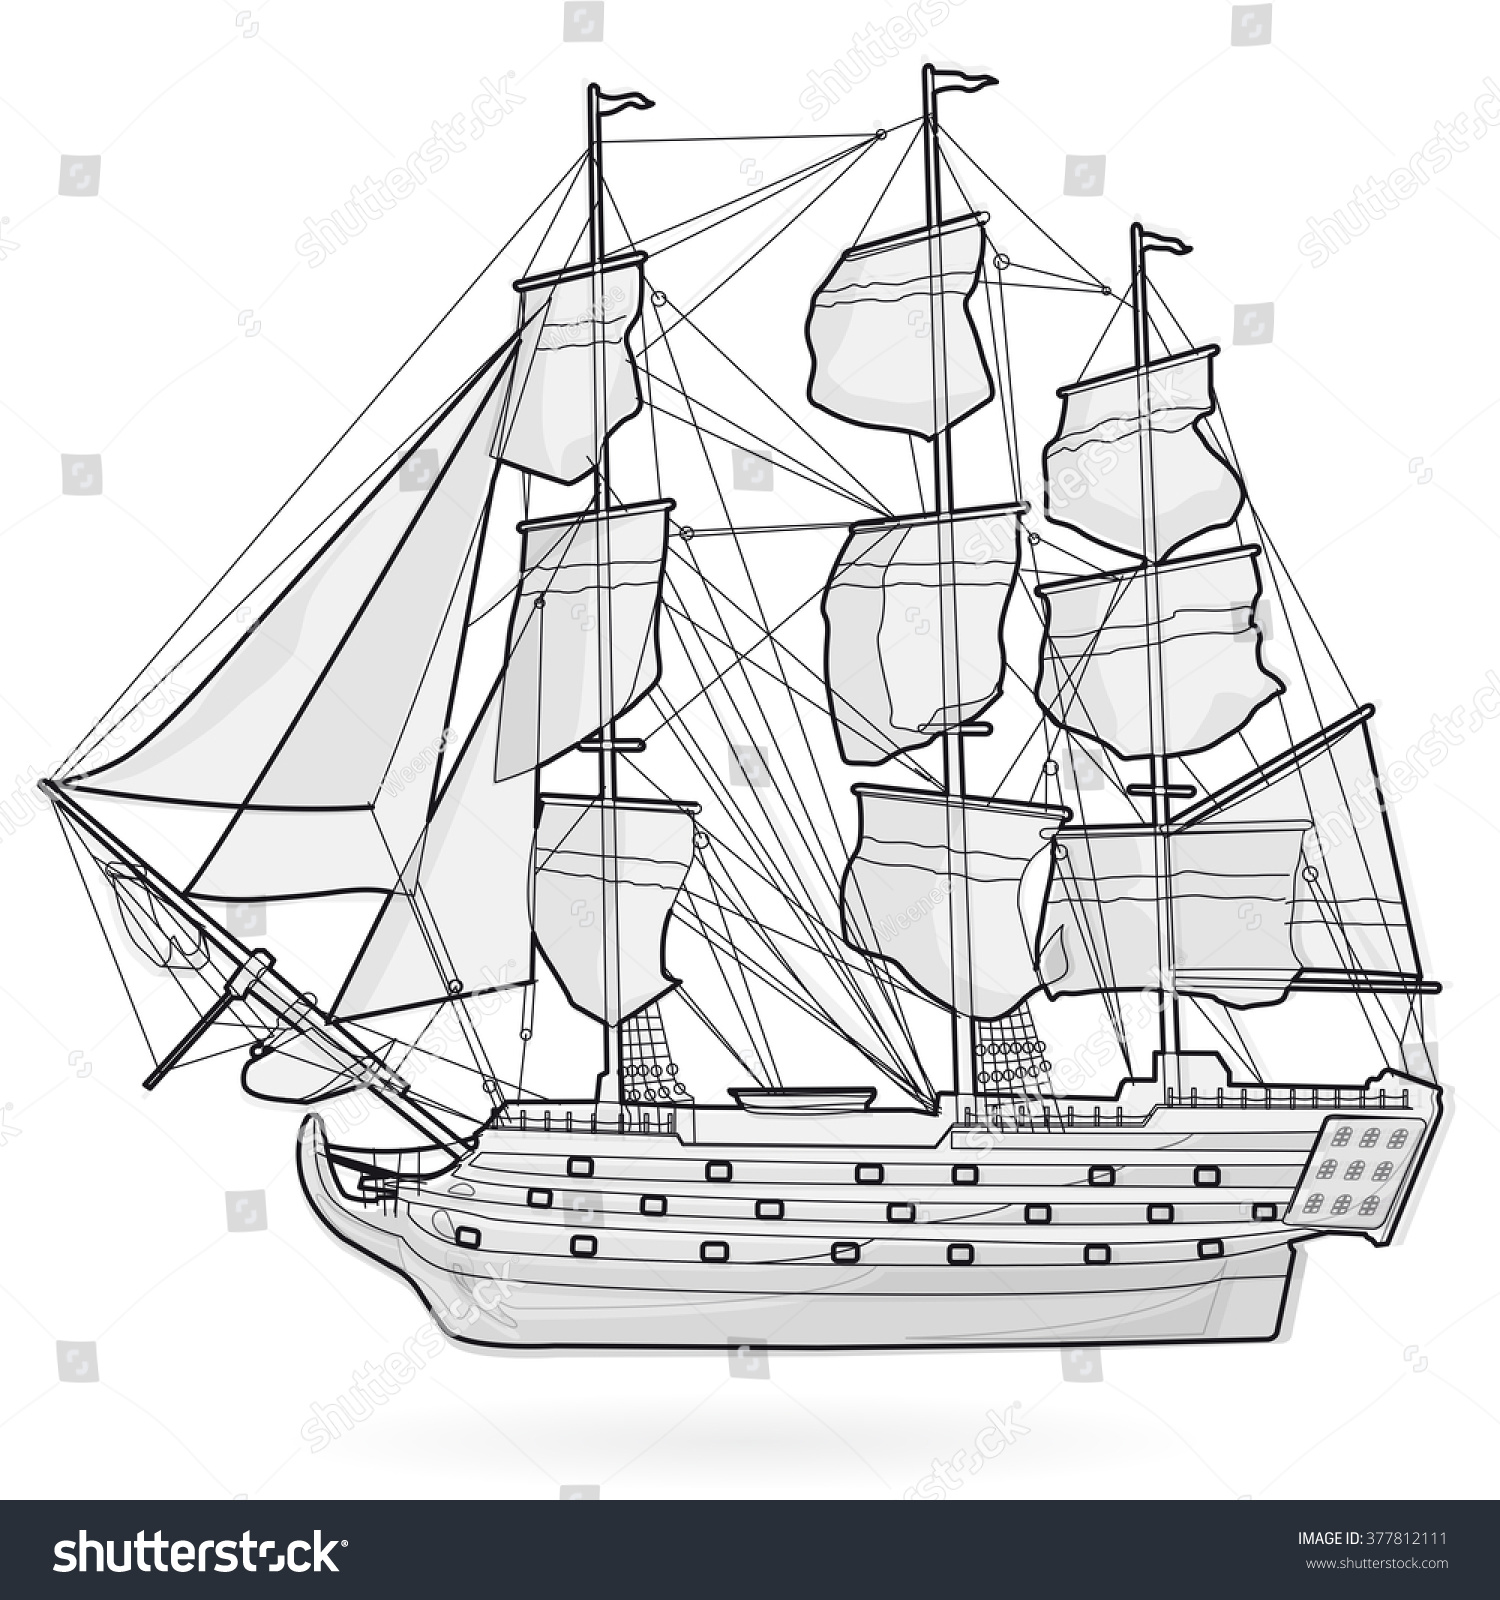 Big Old Wooden Historical Sailing Wire Stock Vector Royalty Free Wiring A Boat From Scratch On White With Sails Mast Brown